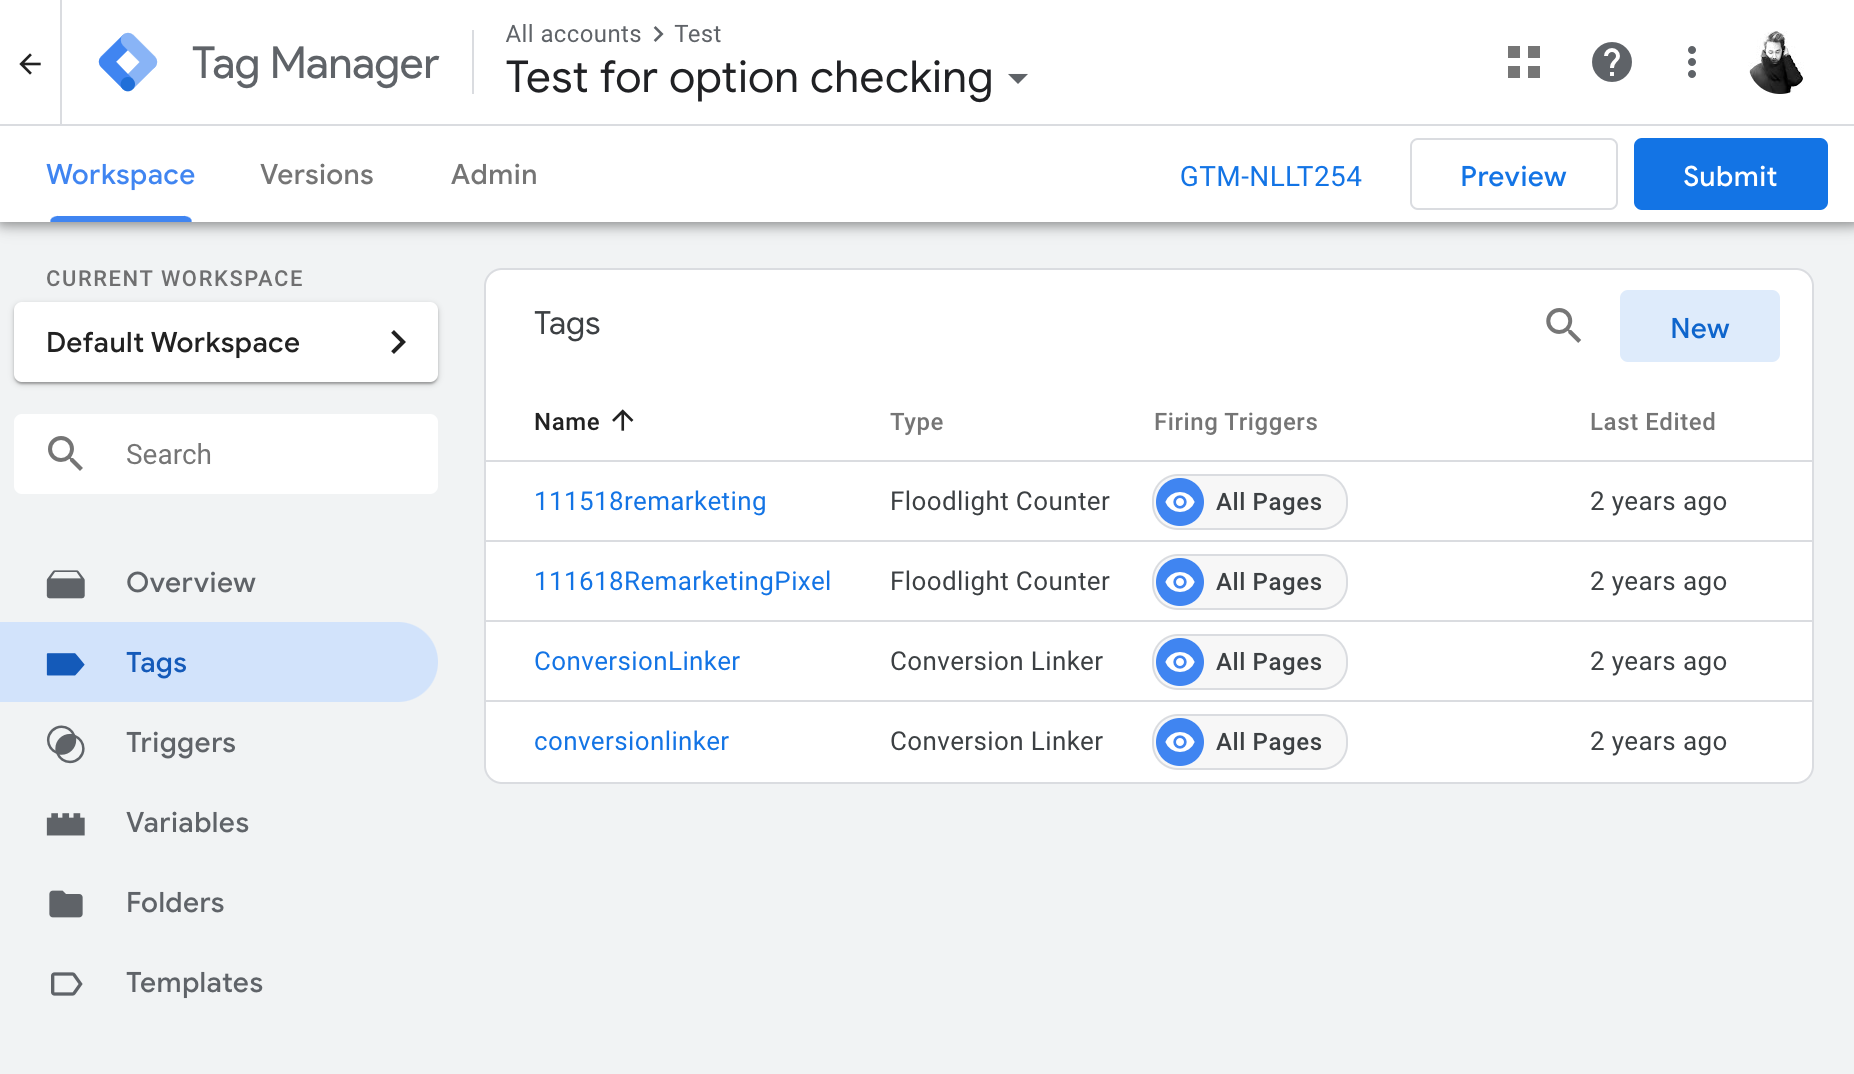 Tag Manager Select New